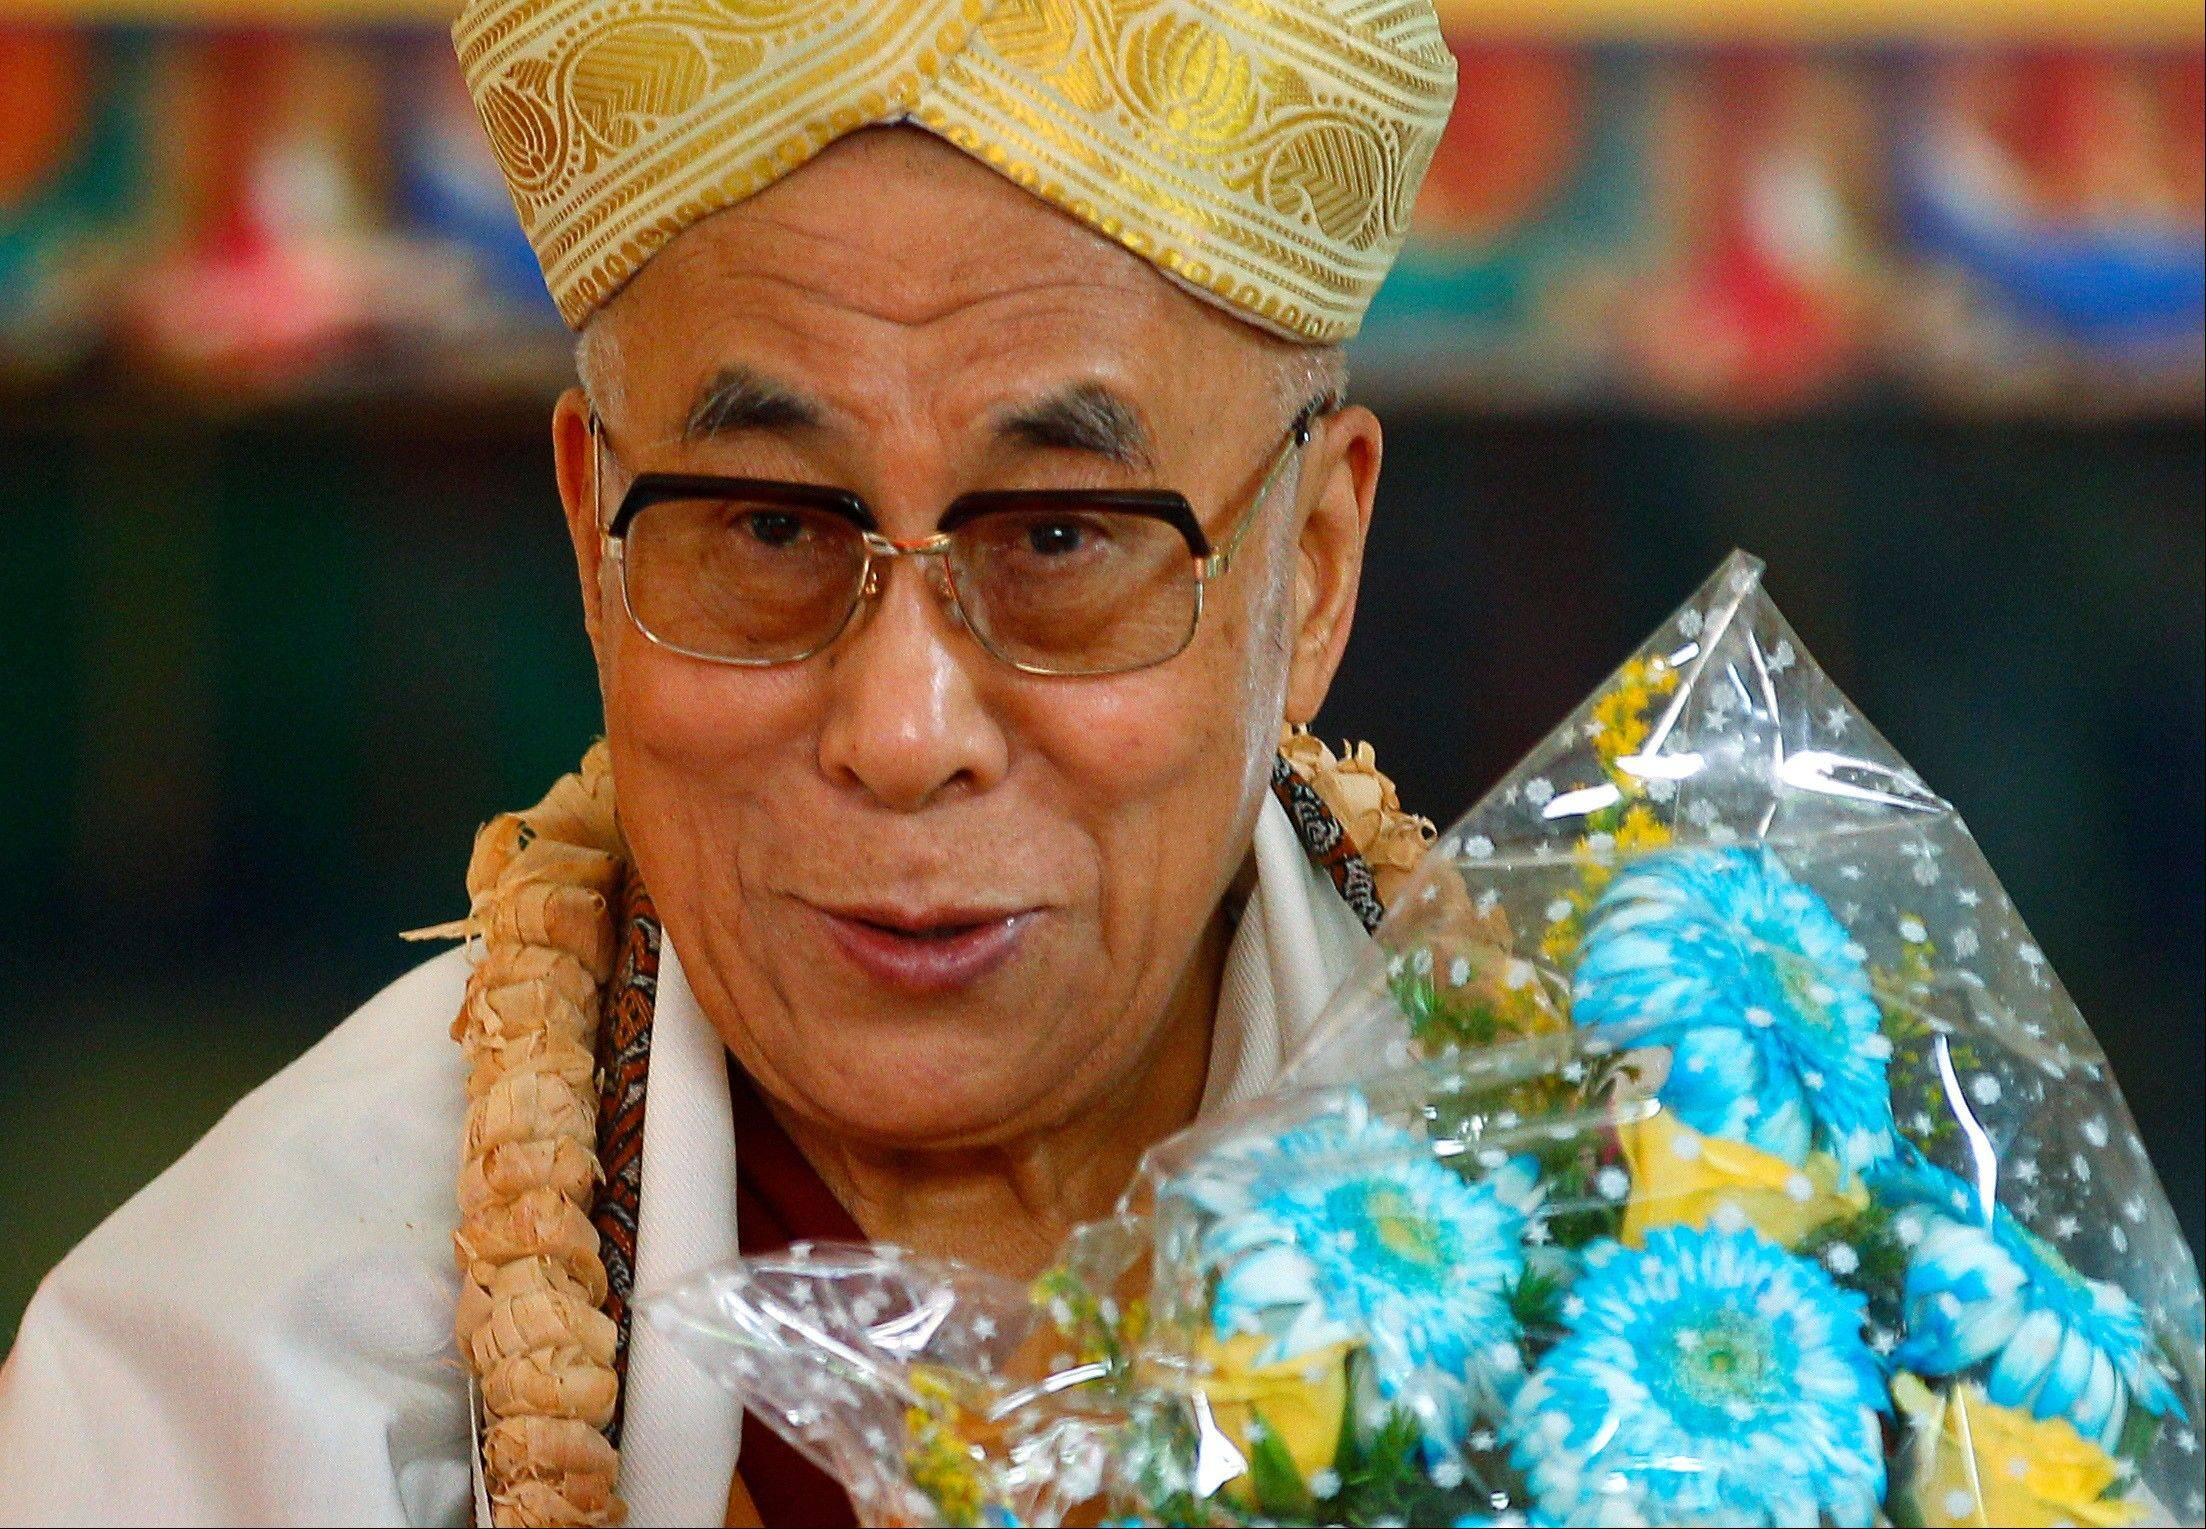 "Tibetan spiritual leader the Dalai Lama reacts after he was presented a headgear and a bouquet of flowers during an event organized to celebrate his 78th birthday at a Tibetan Buddhist monastery in Bylakuppe, about 137 miles southwest of Bangalore, India, Saturday, July 6. Speaking after an interfaith meeting, he said 150,000 Tibetans living abroad represent ""six million Tibetans (in China) who have no freedom or opportunity to express what they feel."""